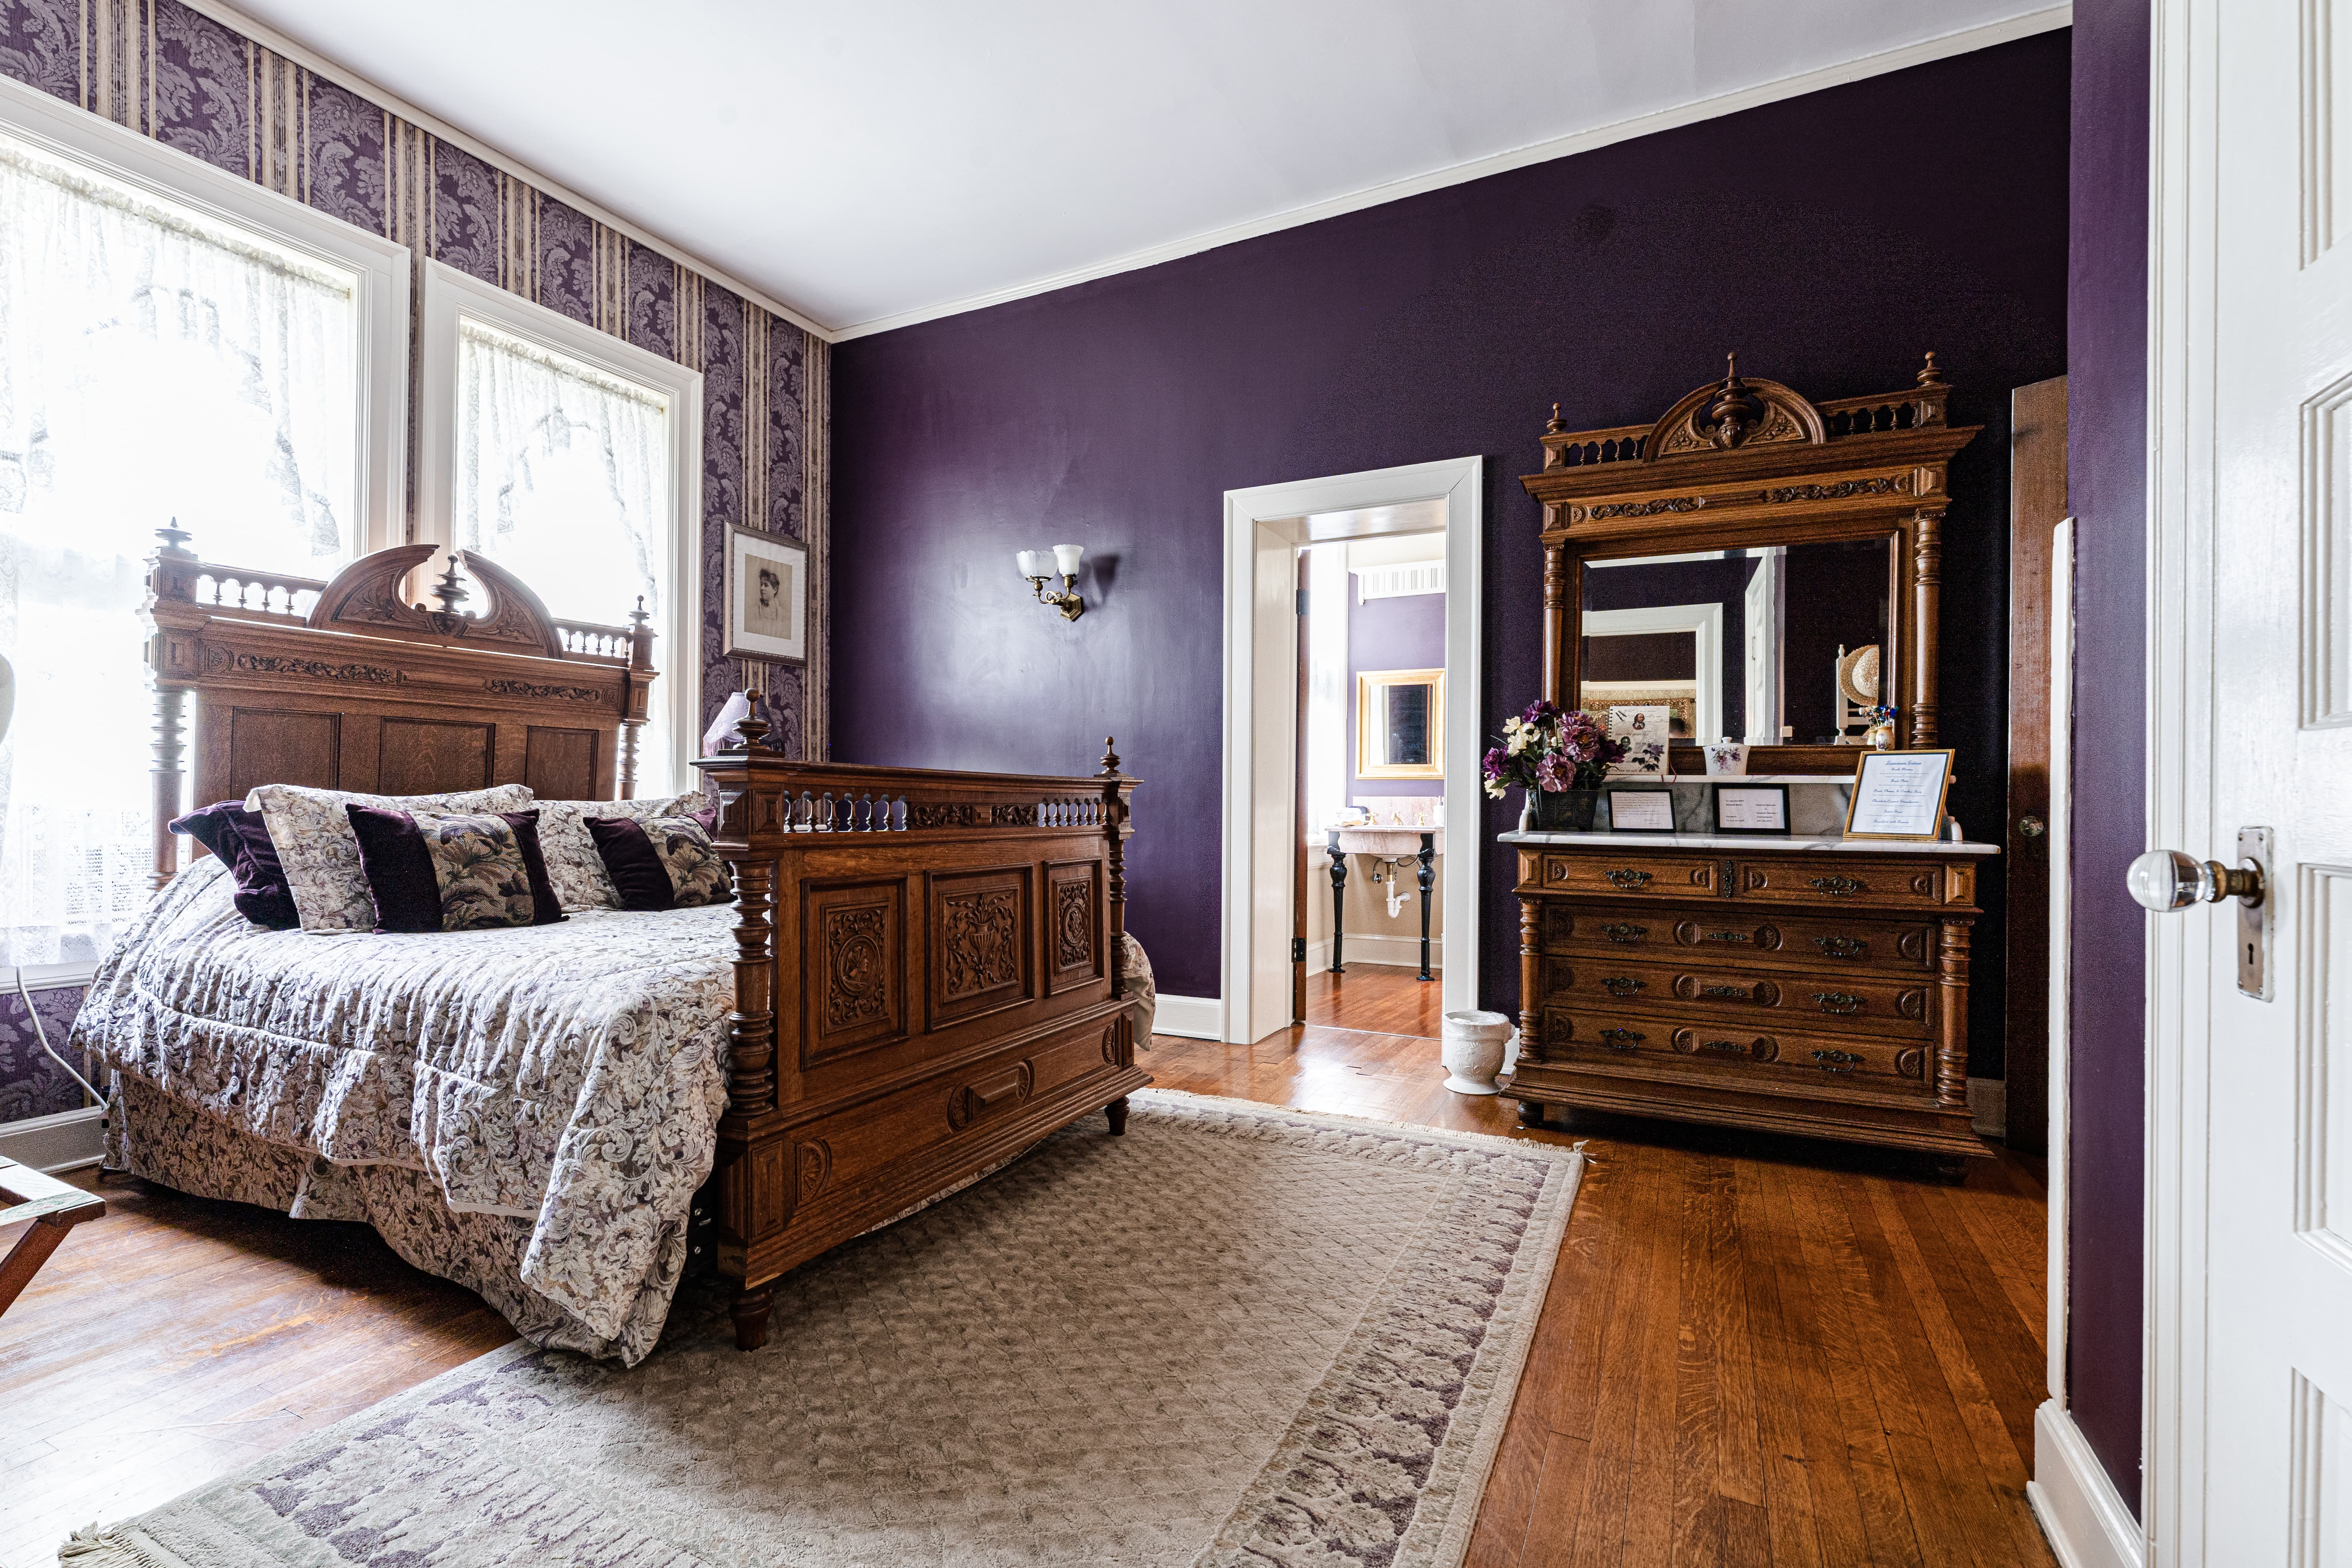 Deep purple room with white trim, white curtains, wood floors, and carved wood bed covered in floral bedding